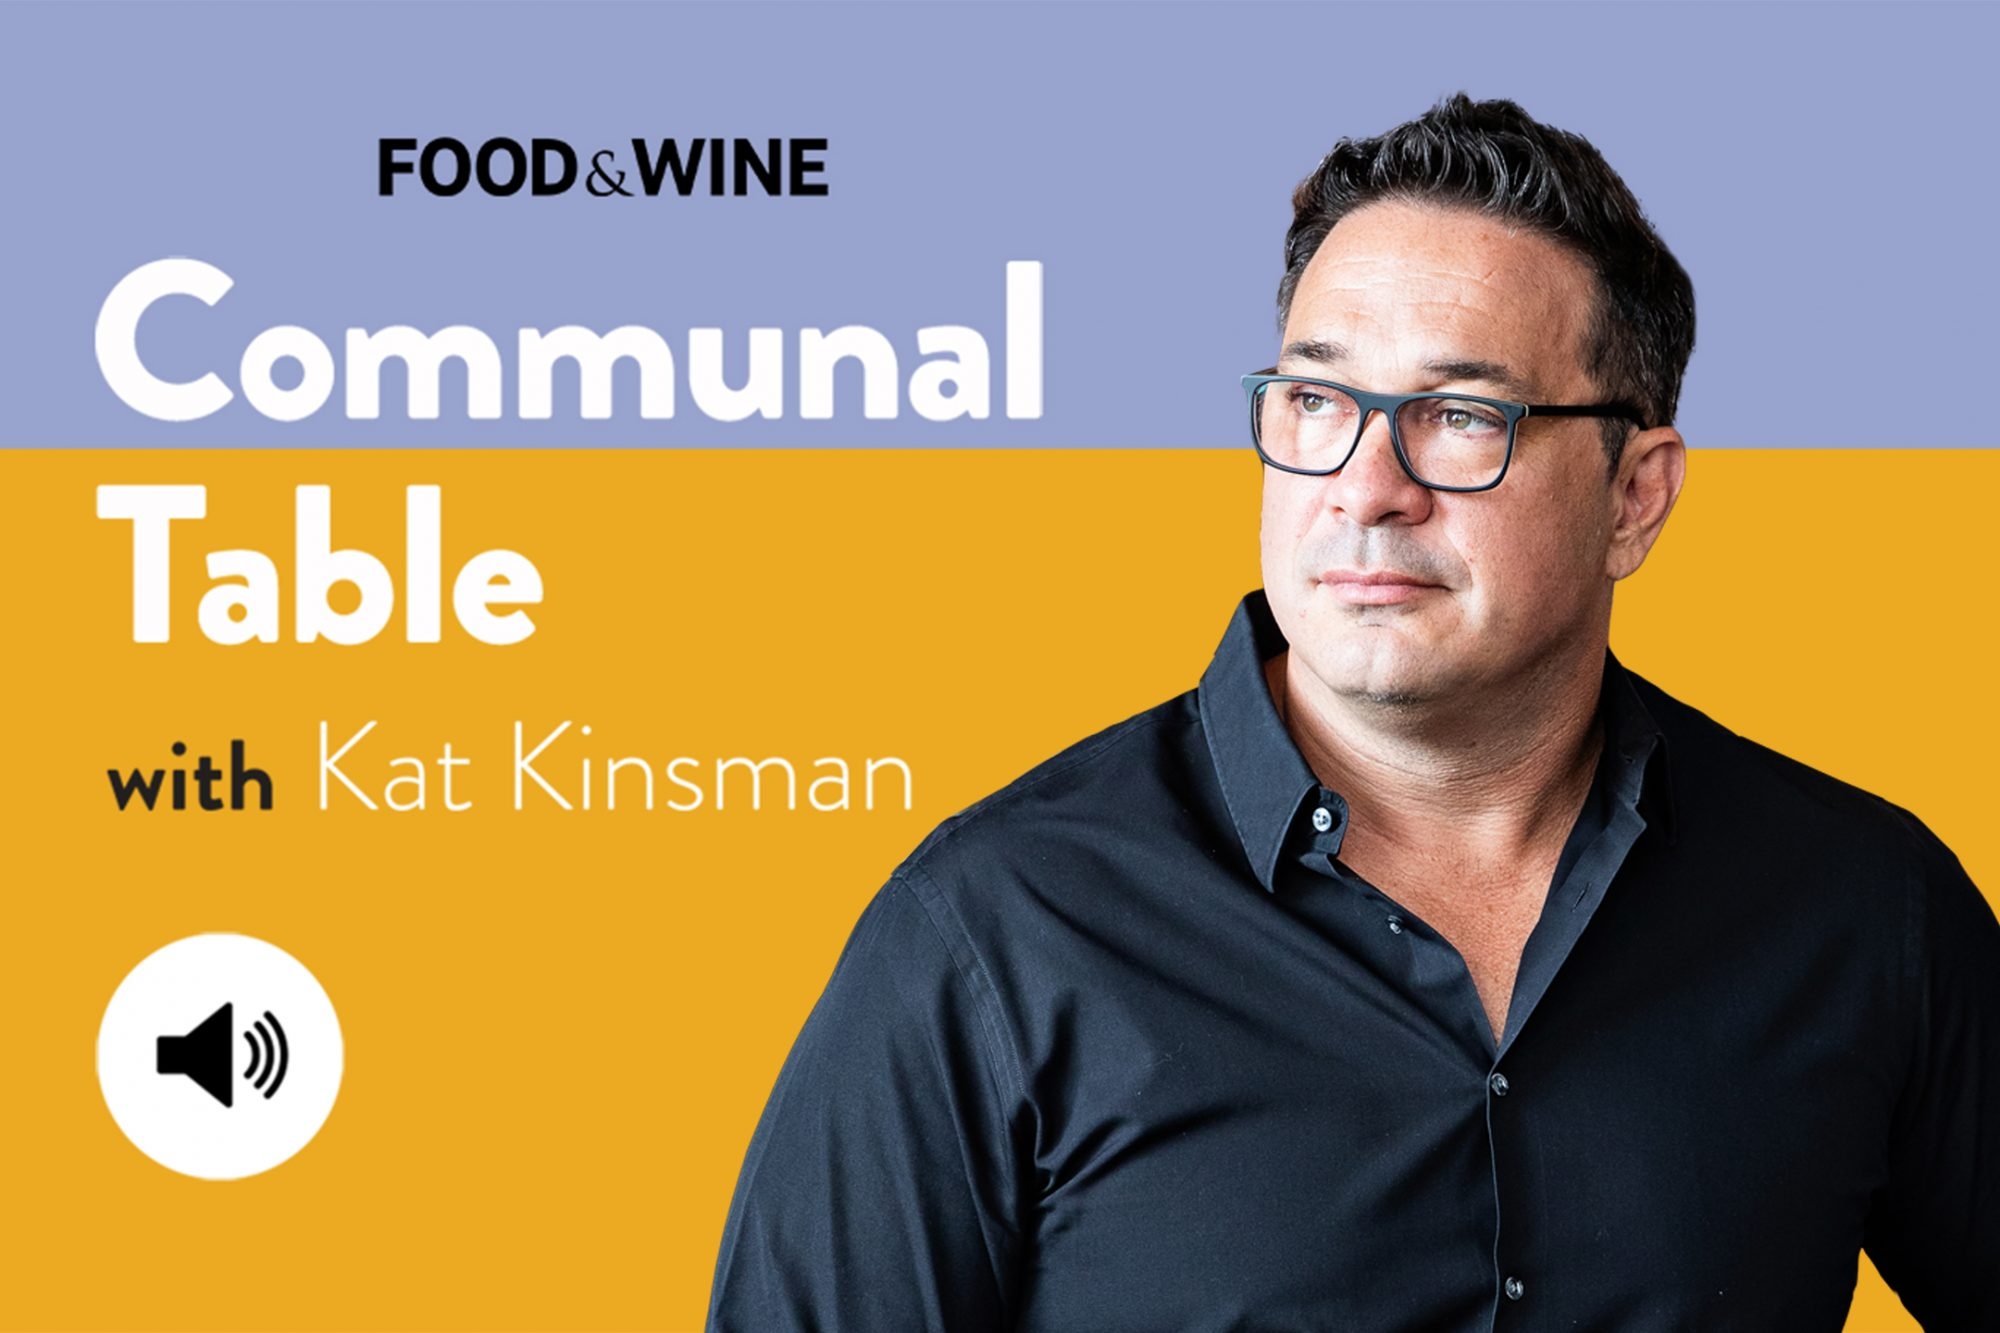 Communal Table with Kat Kinsman featuring Steve Palmer